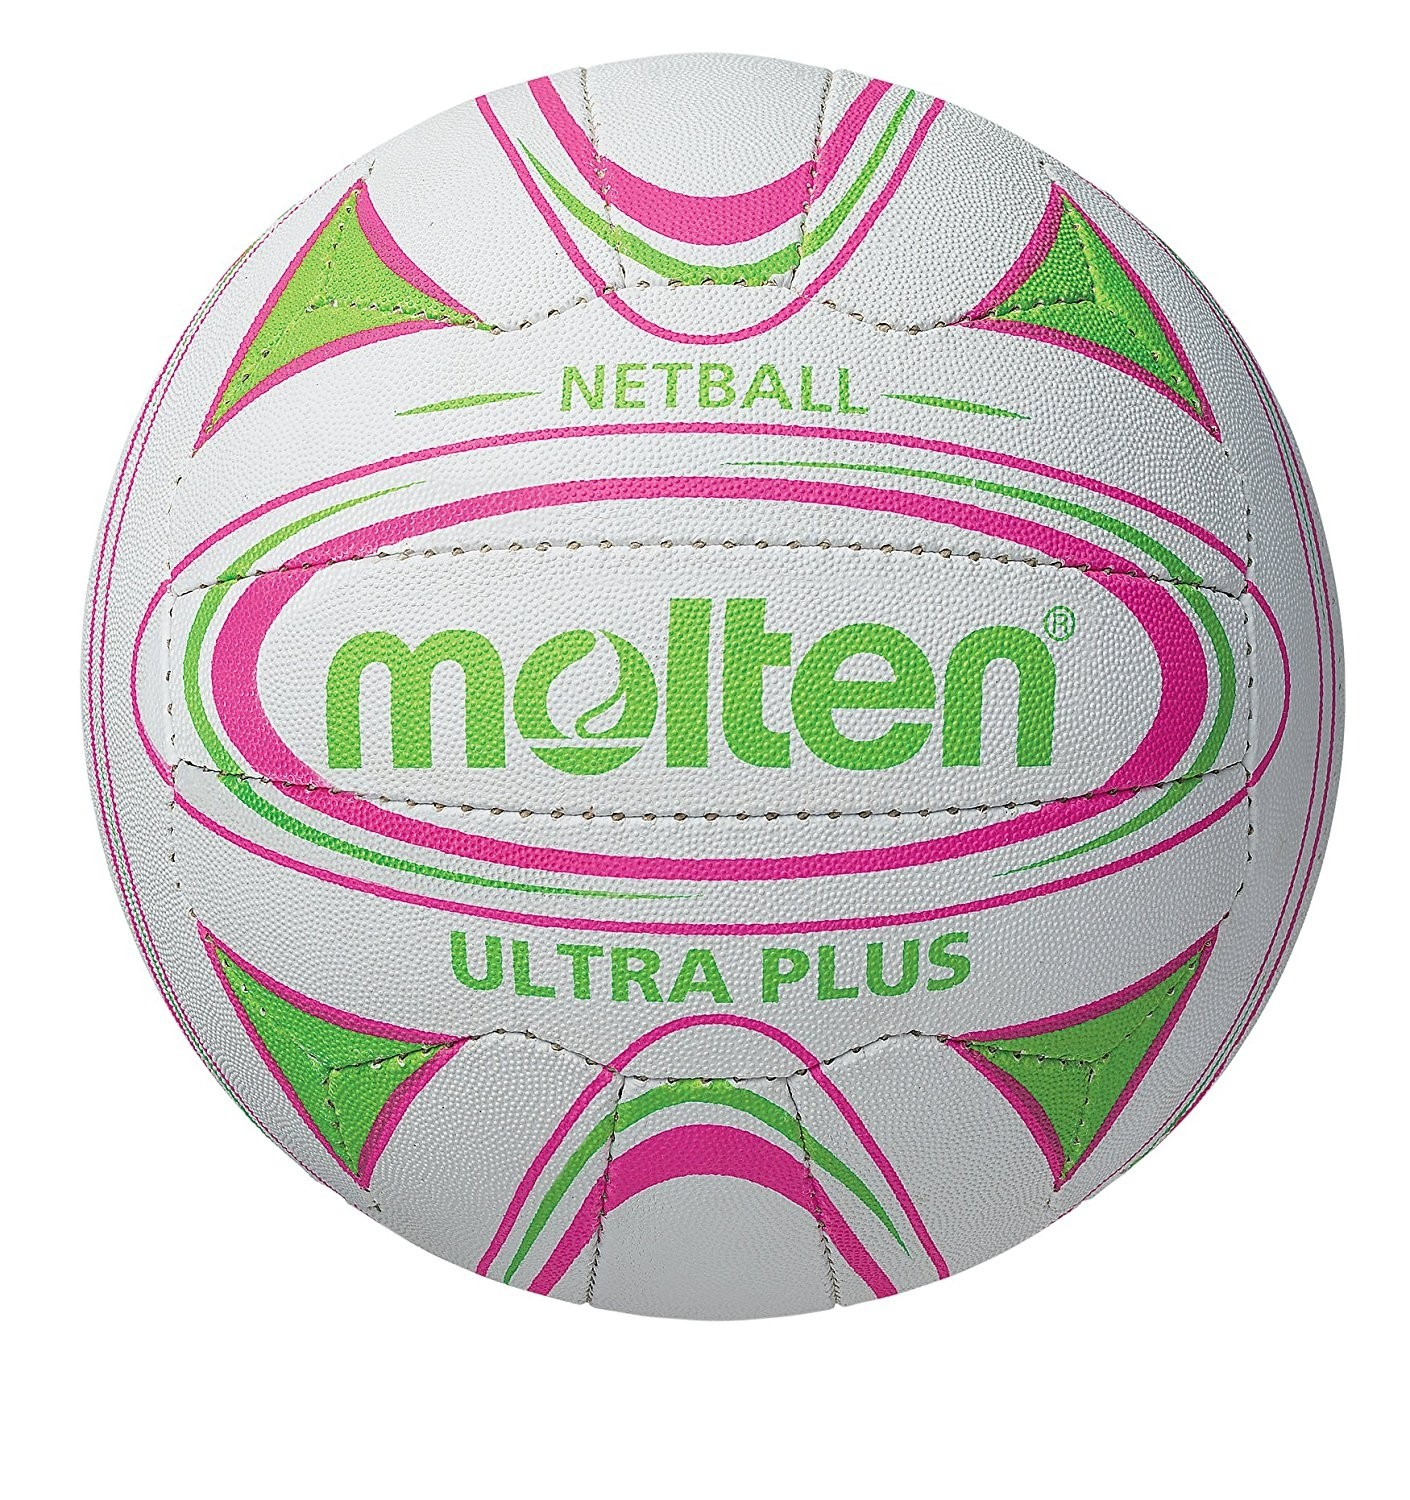 2018 Molten Ultra Plus Club Match Netball - White/Green/Pink